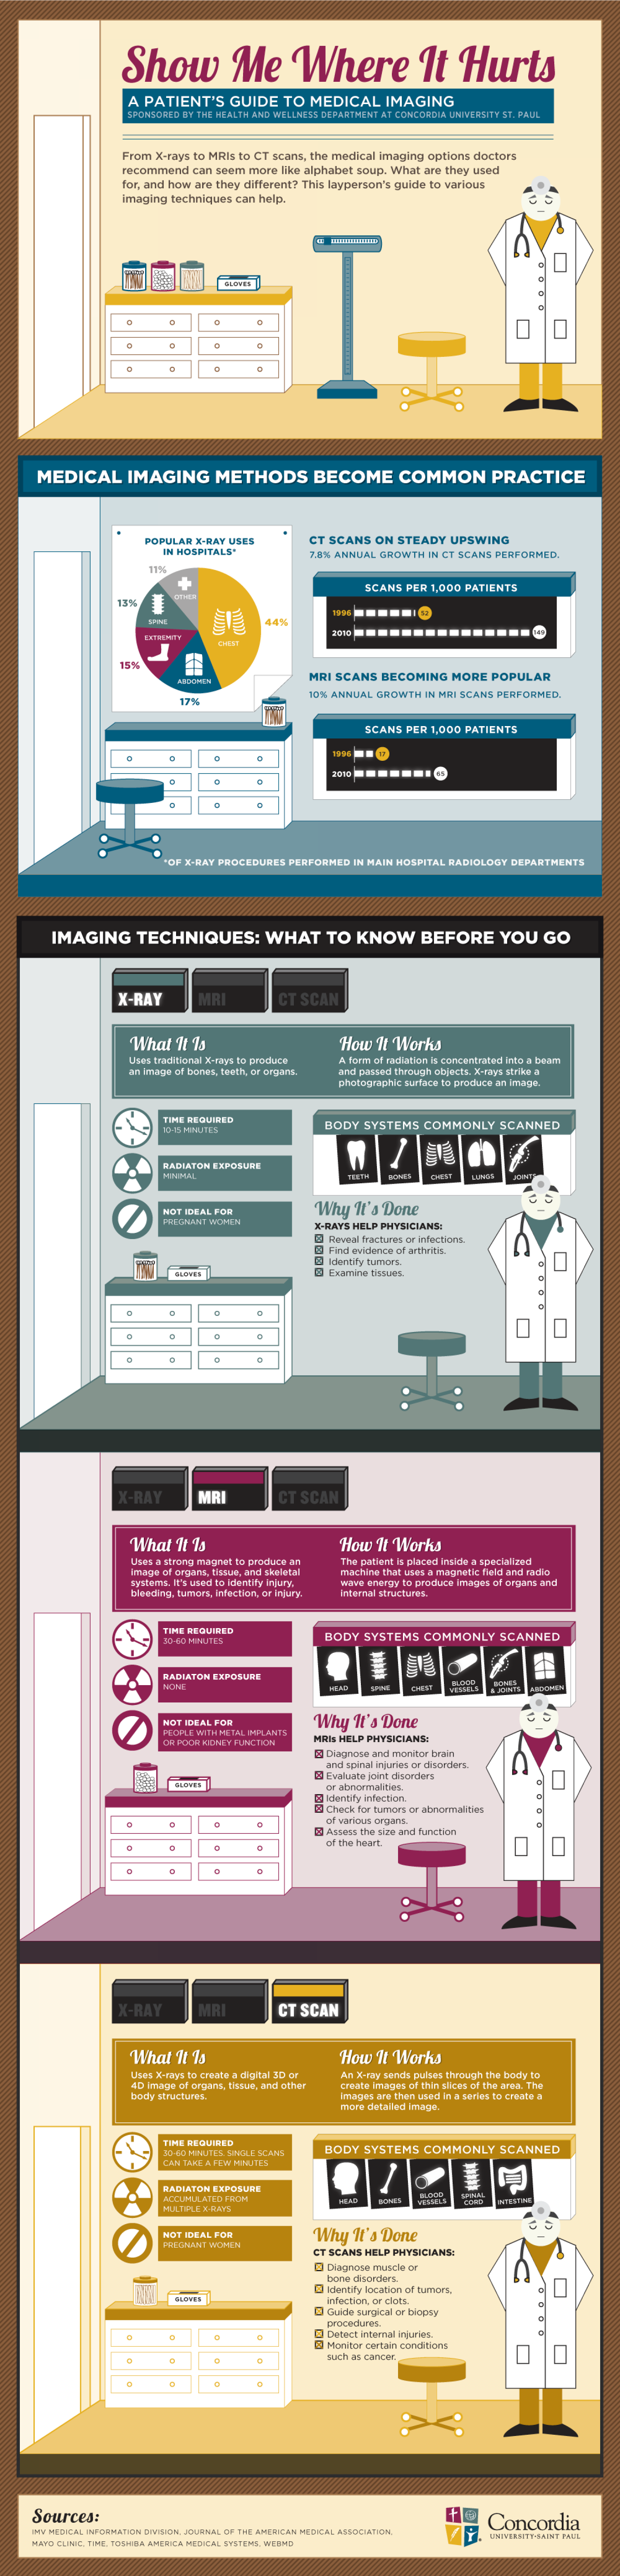 A Patients Guide to Medical Imaging Infographic